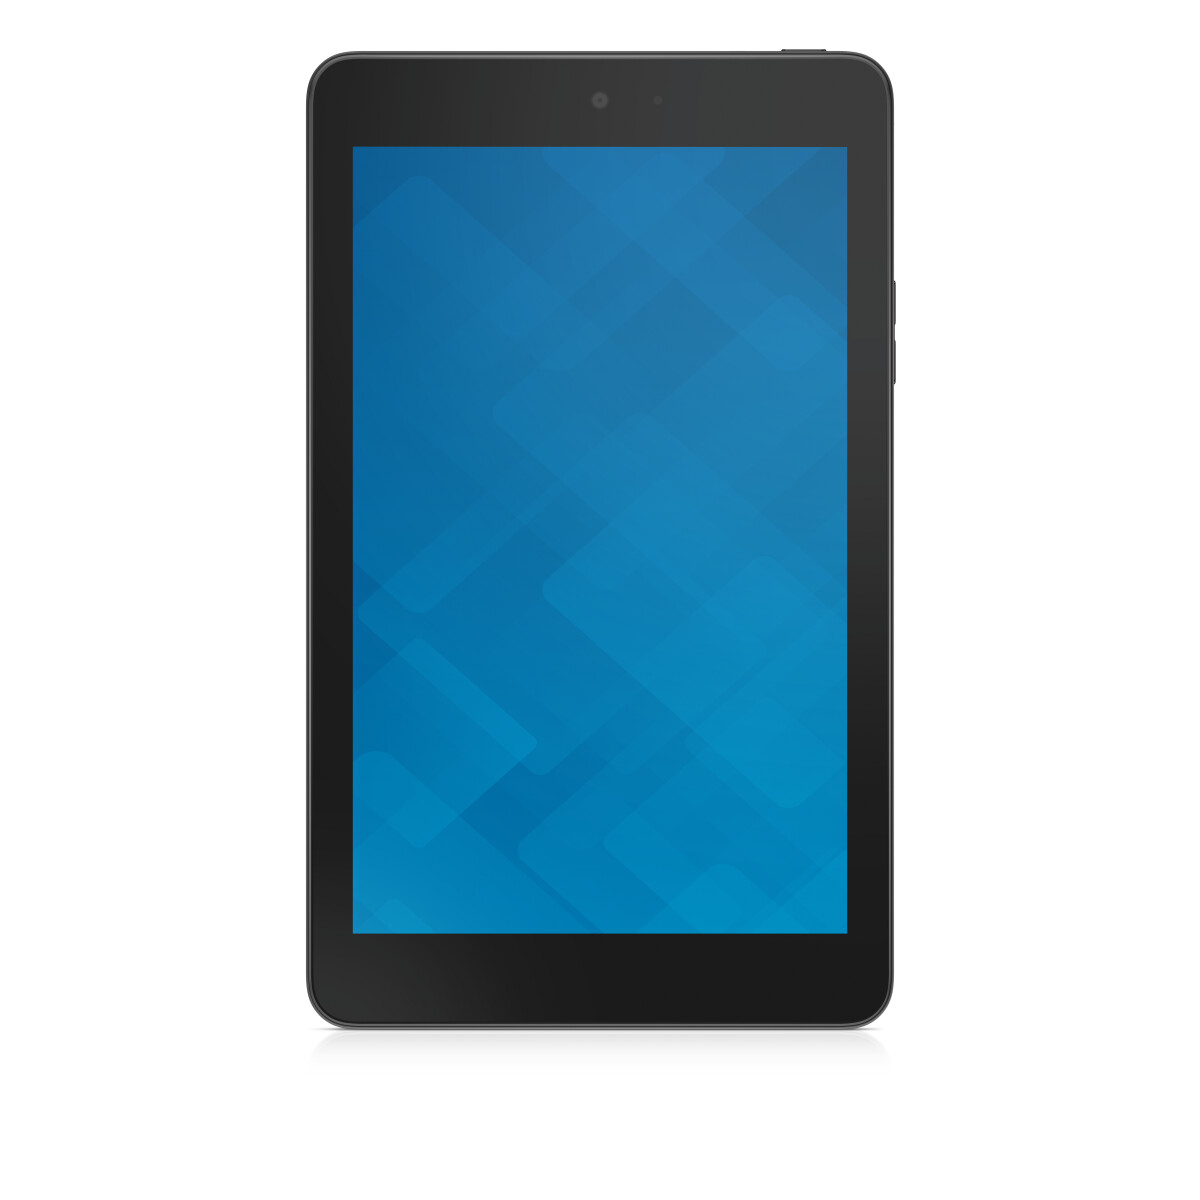 Dell intros new Venue 7 and Venue 8 Android KitKat tablets ...